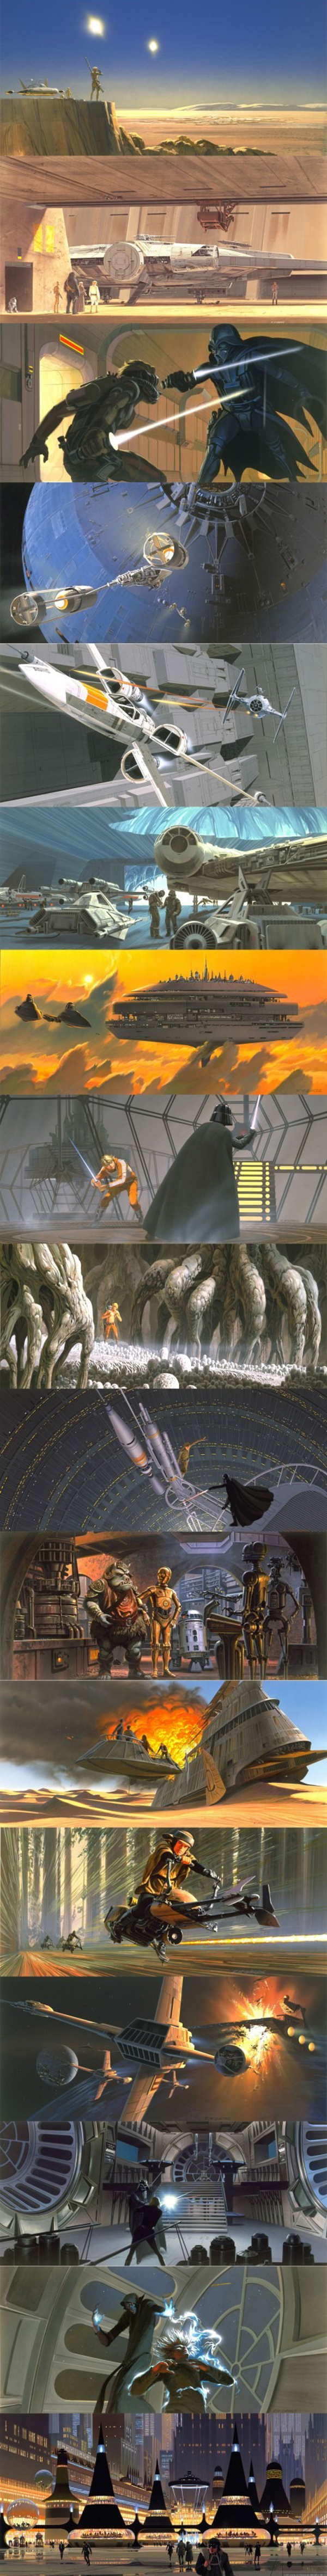 cool star wars concept art